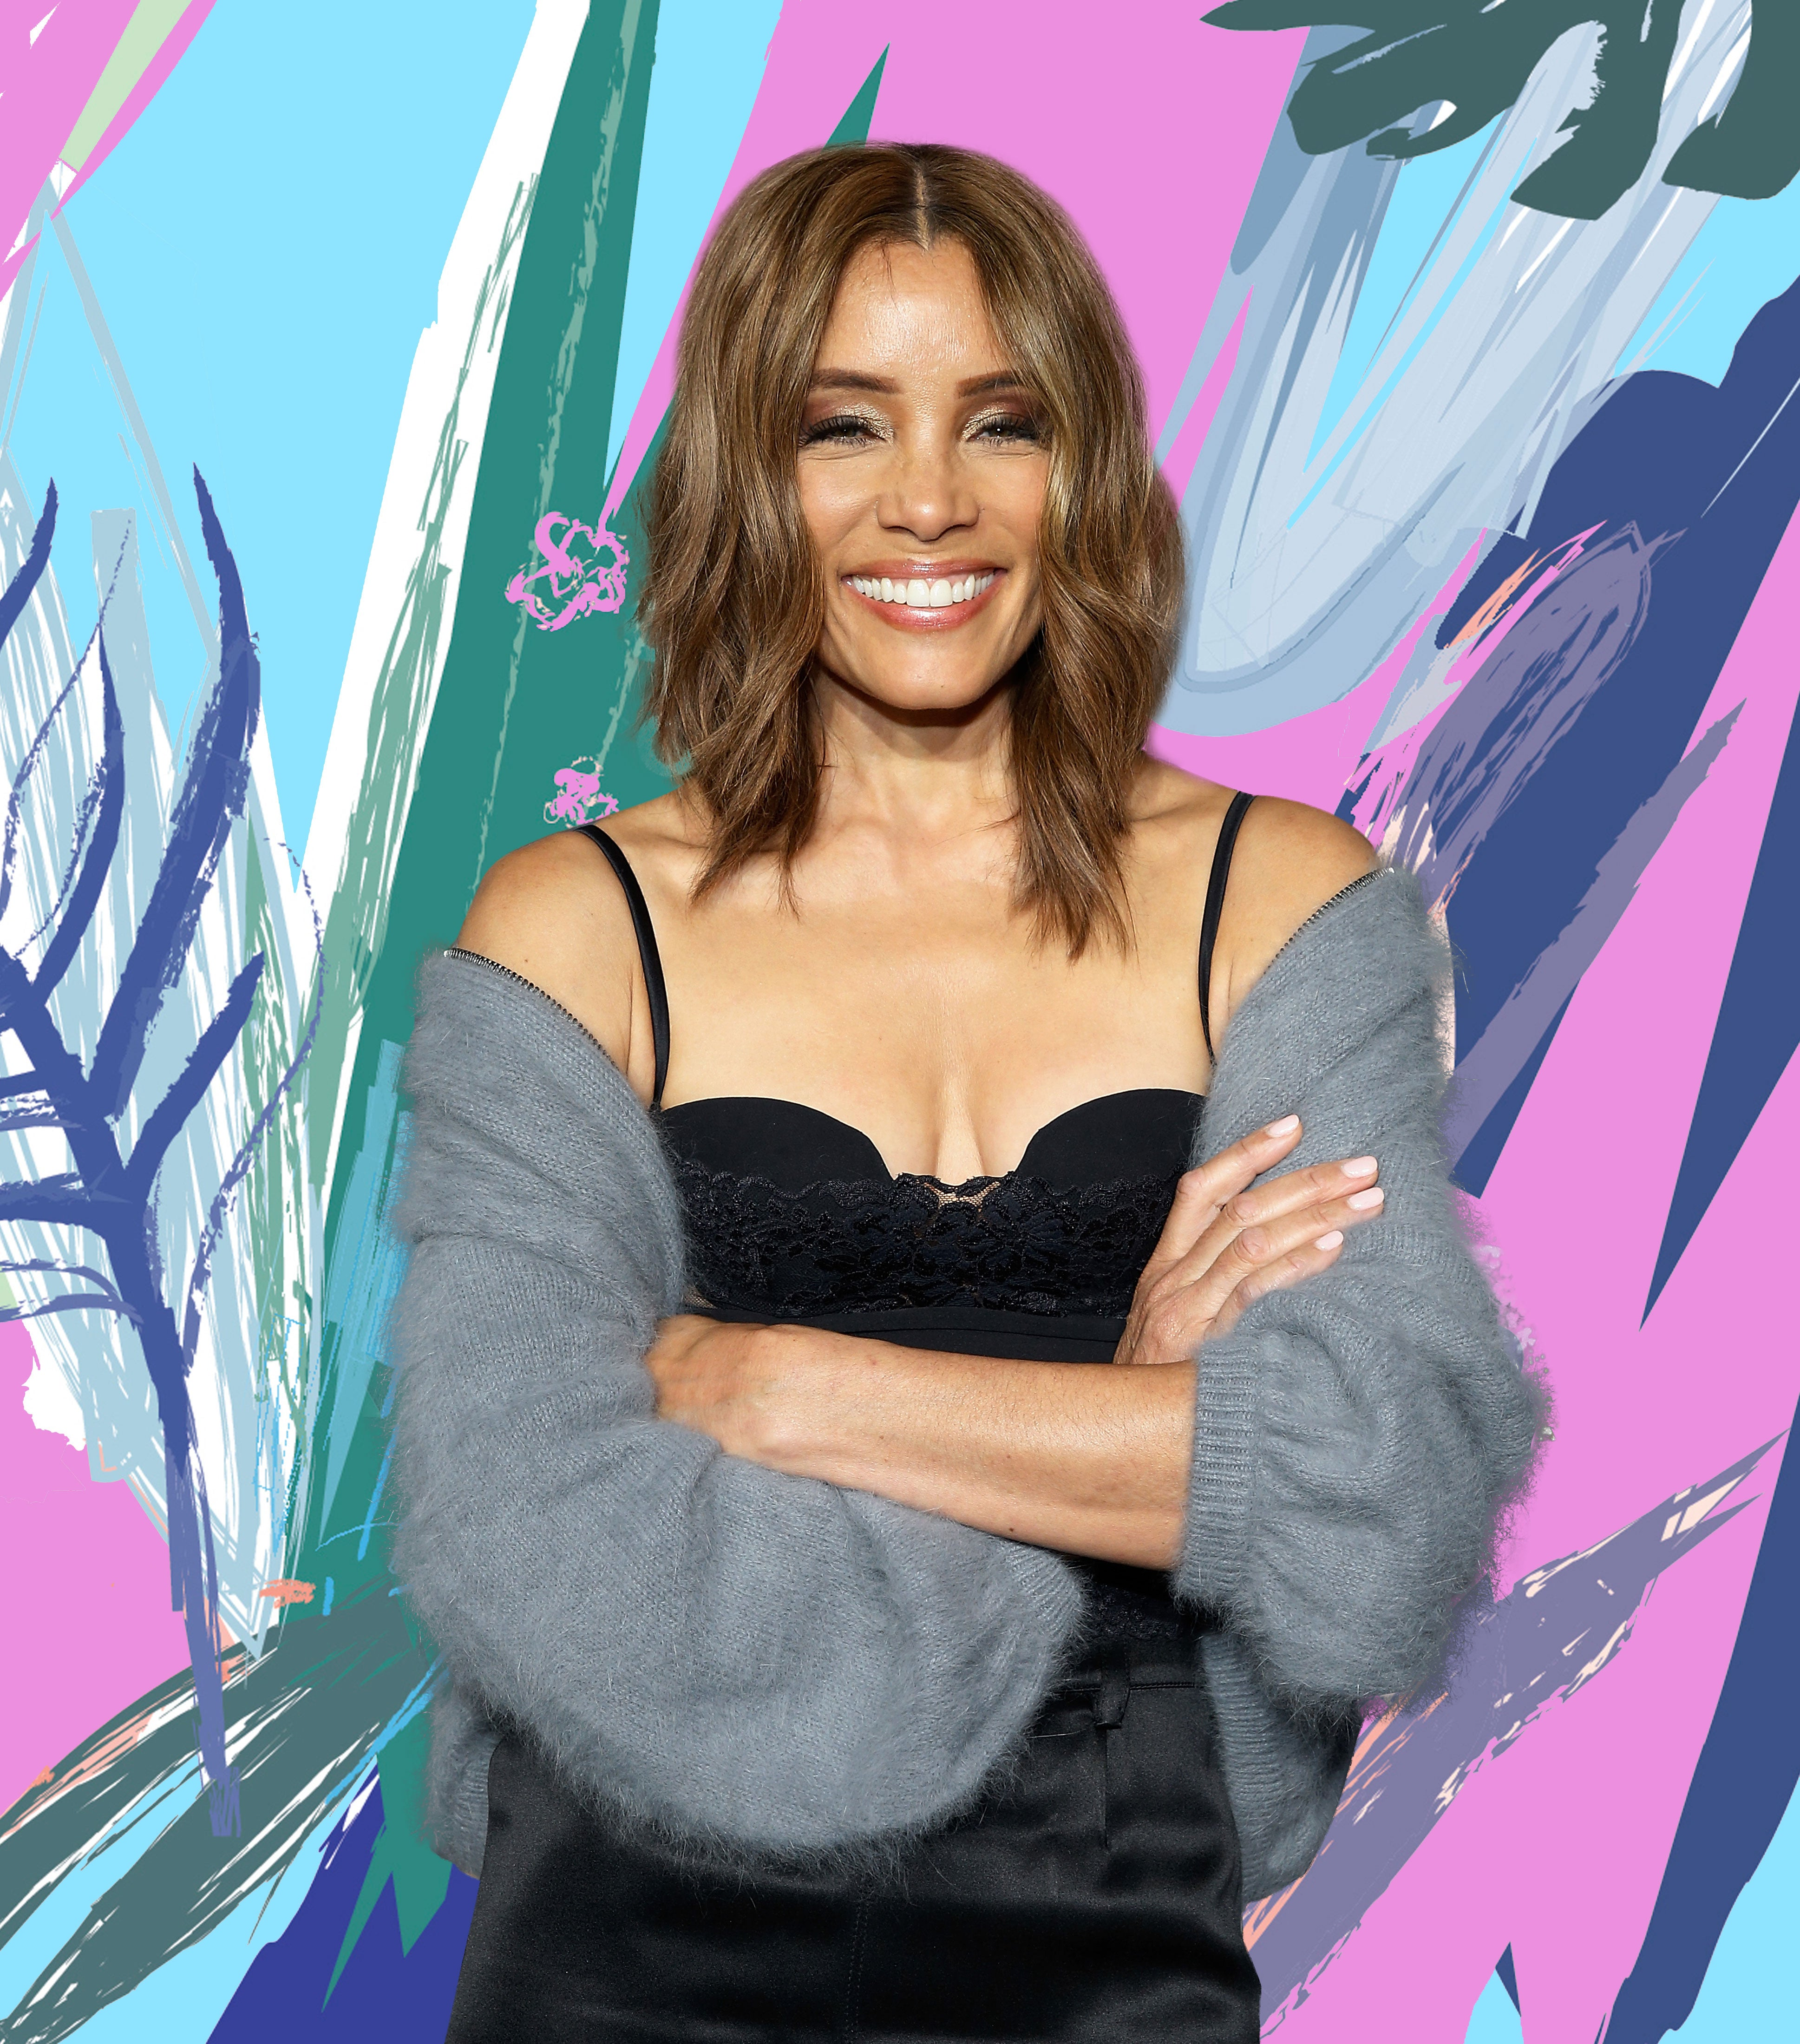 Actress Michael Michele Explains What It's Really Like Working On An Ava DuVernay Set